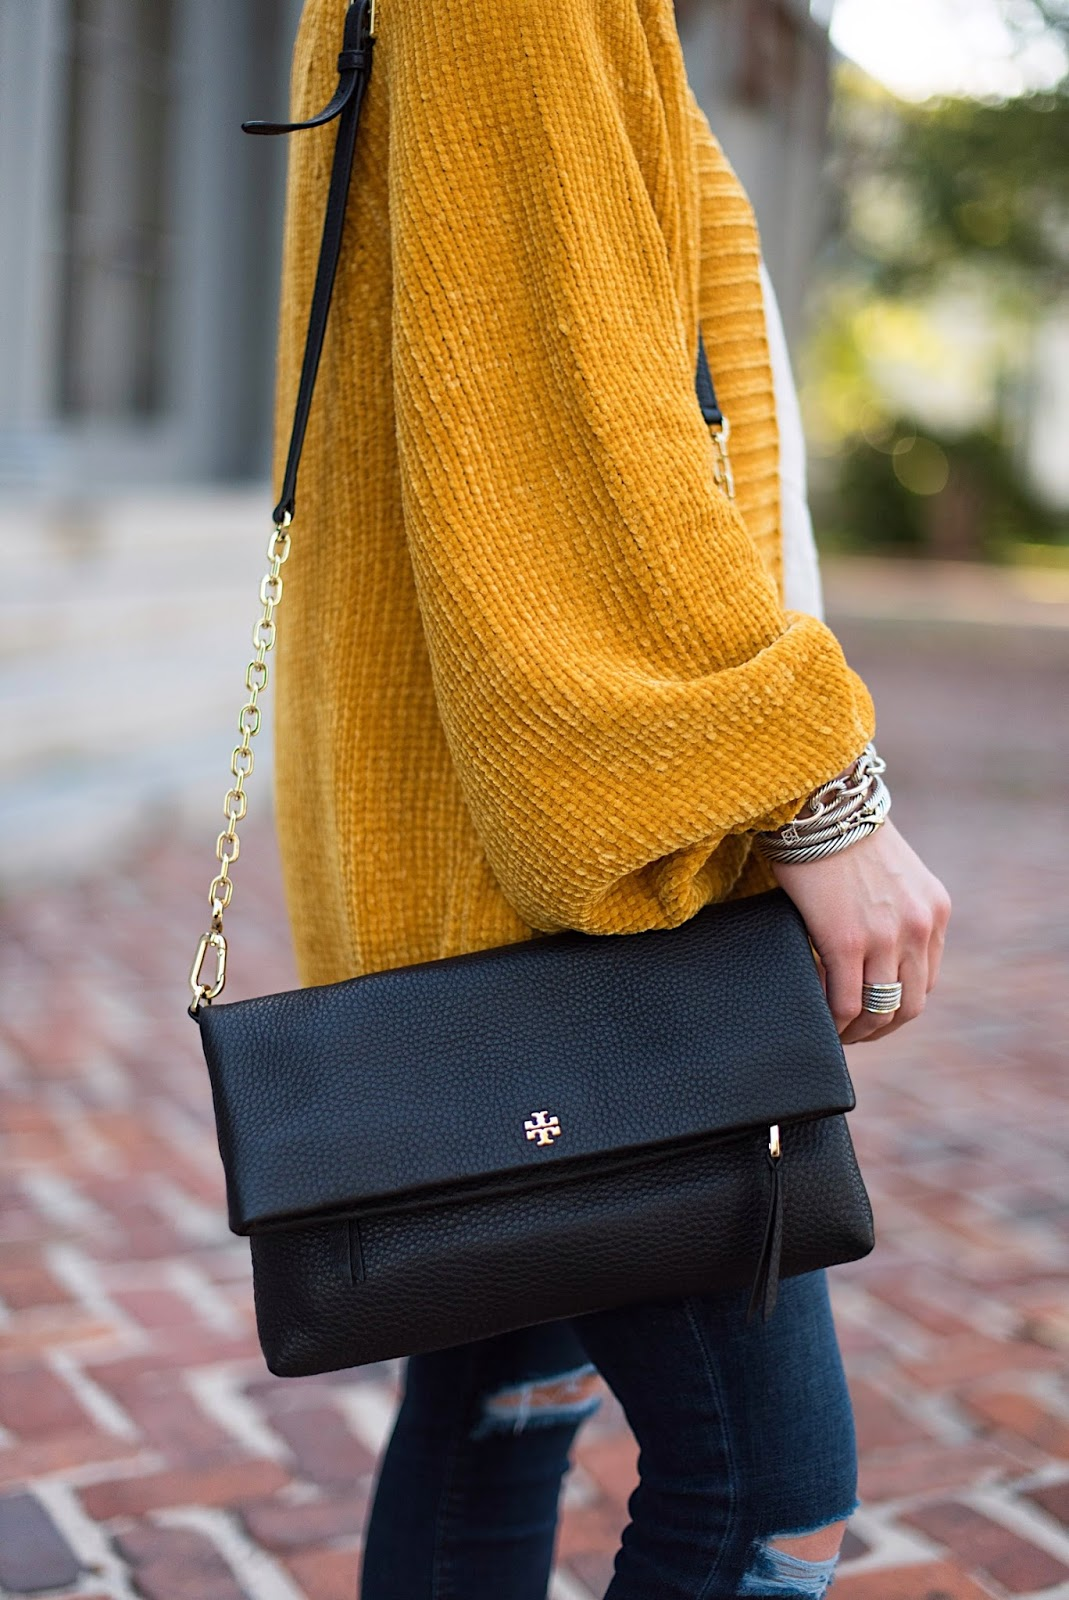 Tory Burch Fold Over Bag - Something Delightful Blog